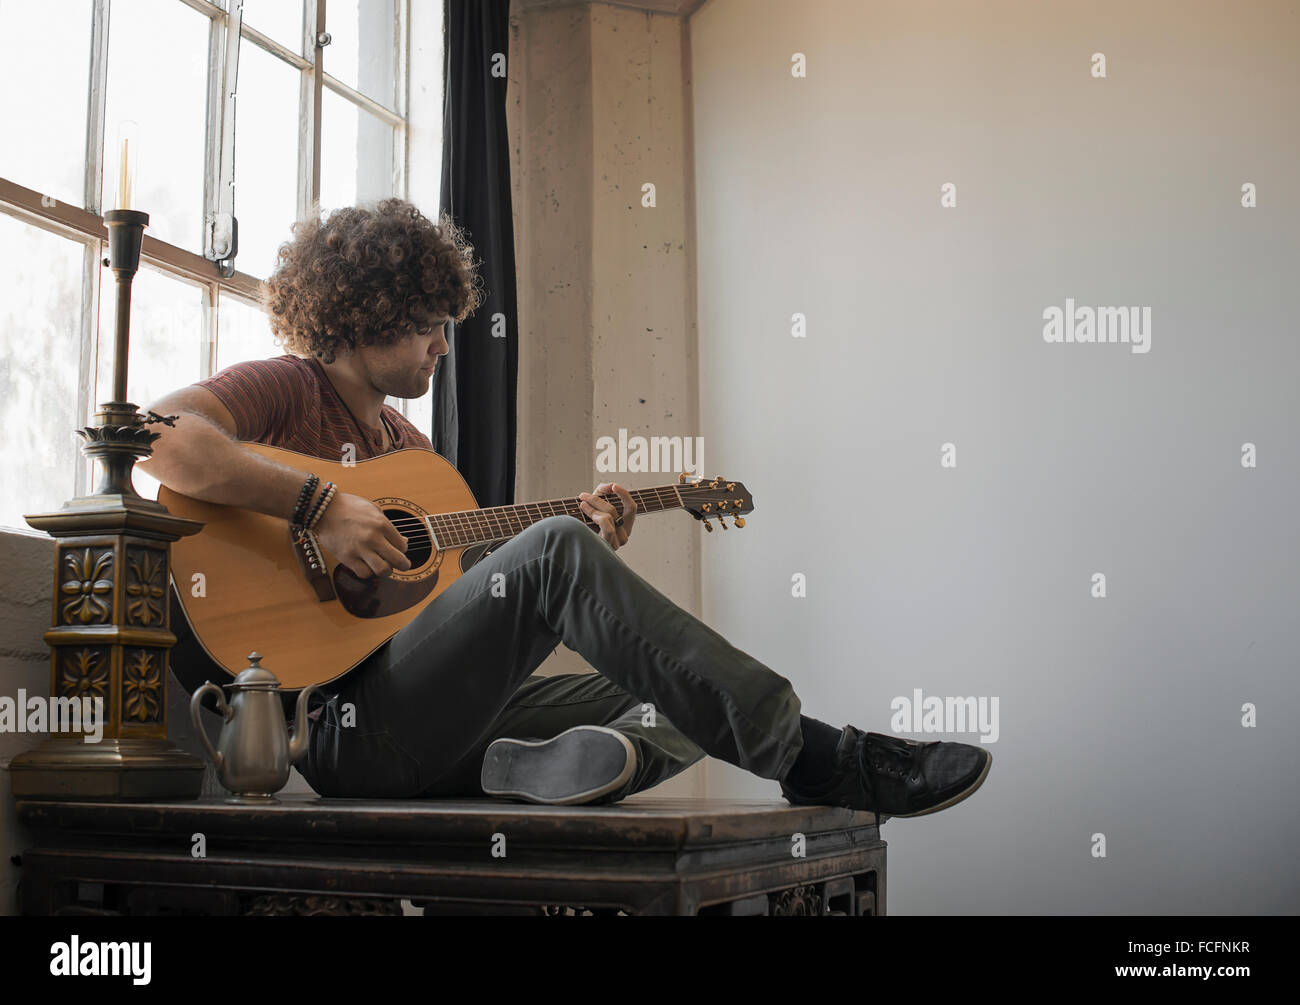 Loft living. A young man playing guitar sitting by a window. - Stock Image